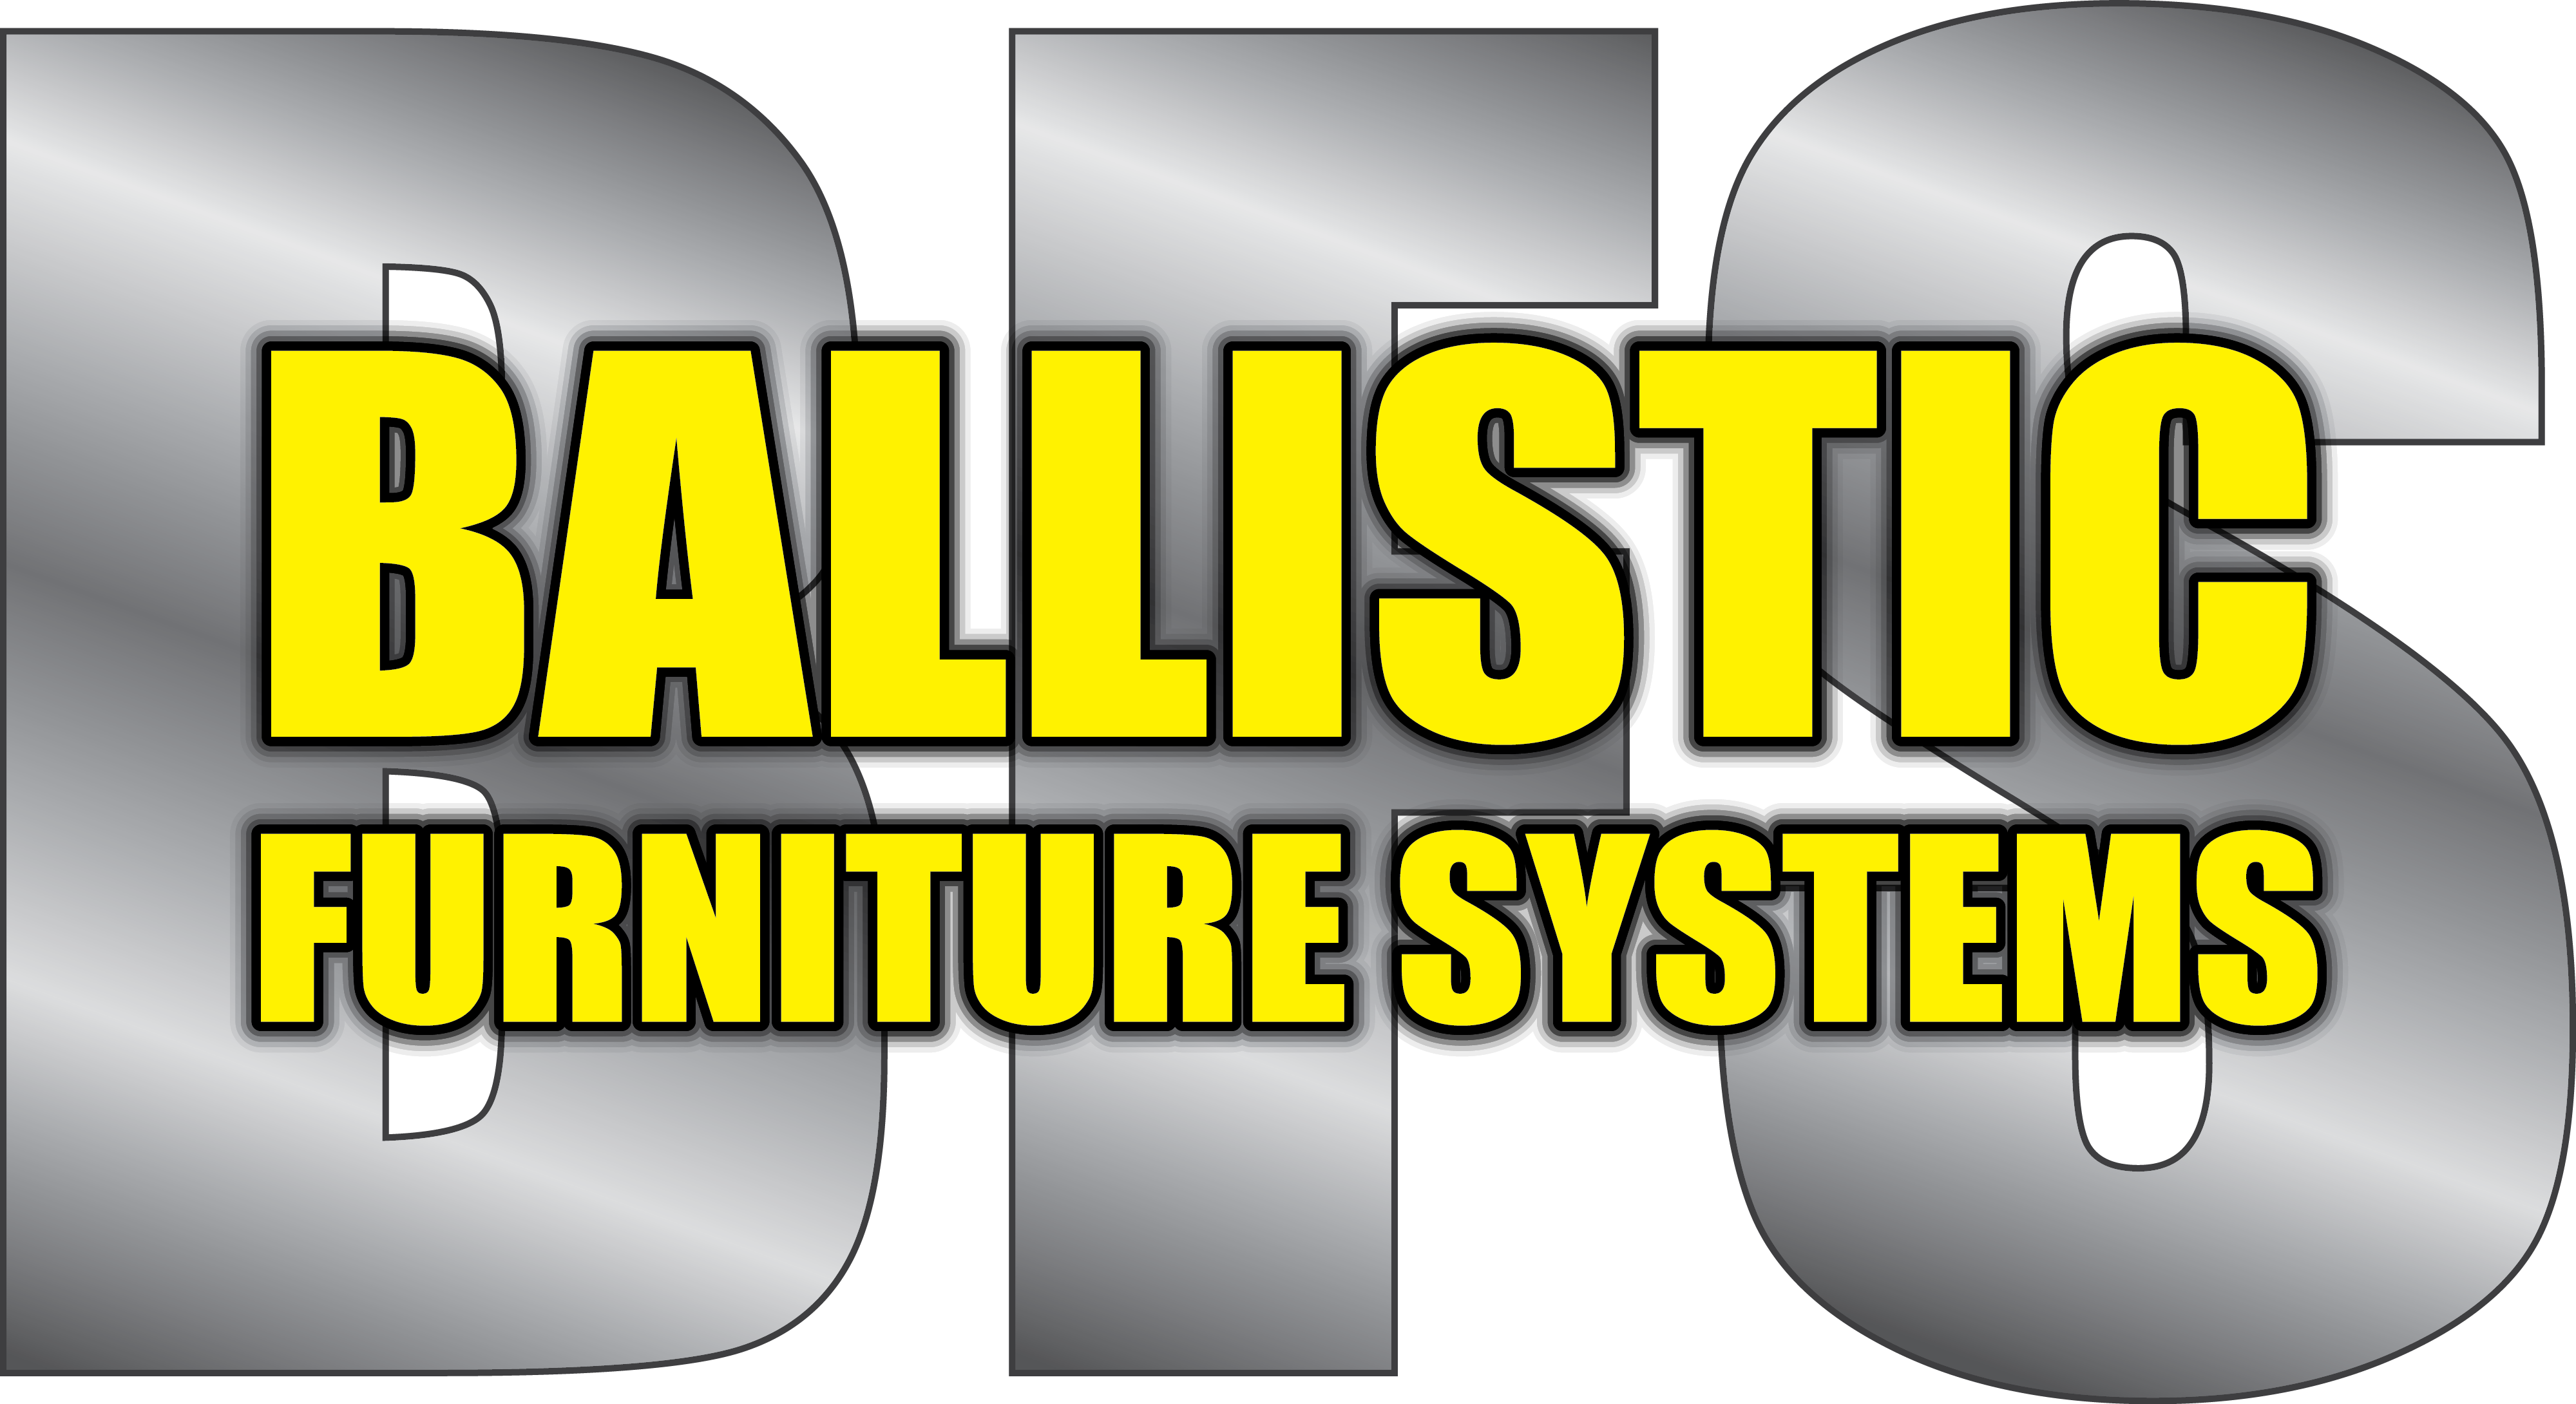 ballistic furniture systems manufactures ballistic barriers for private and public spacesballistic furniture systems logo bfs office furniture